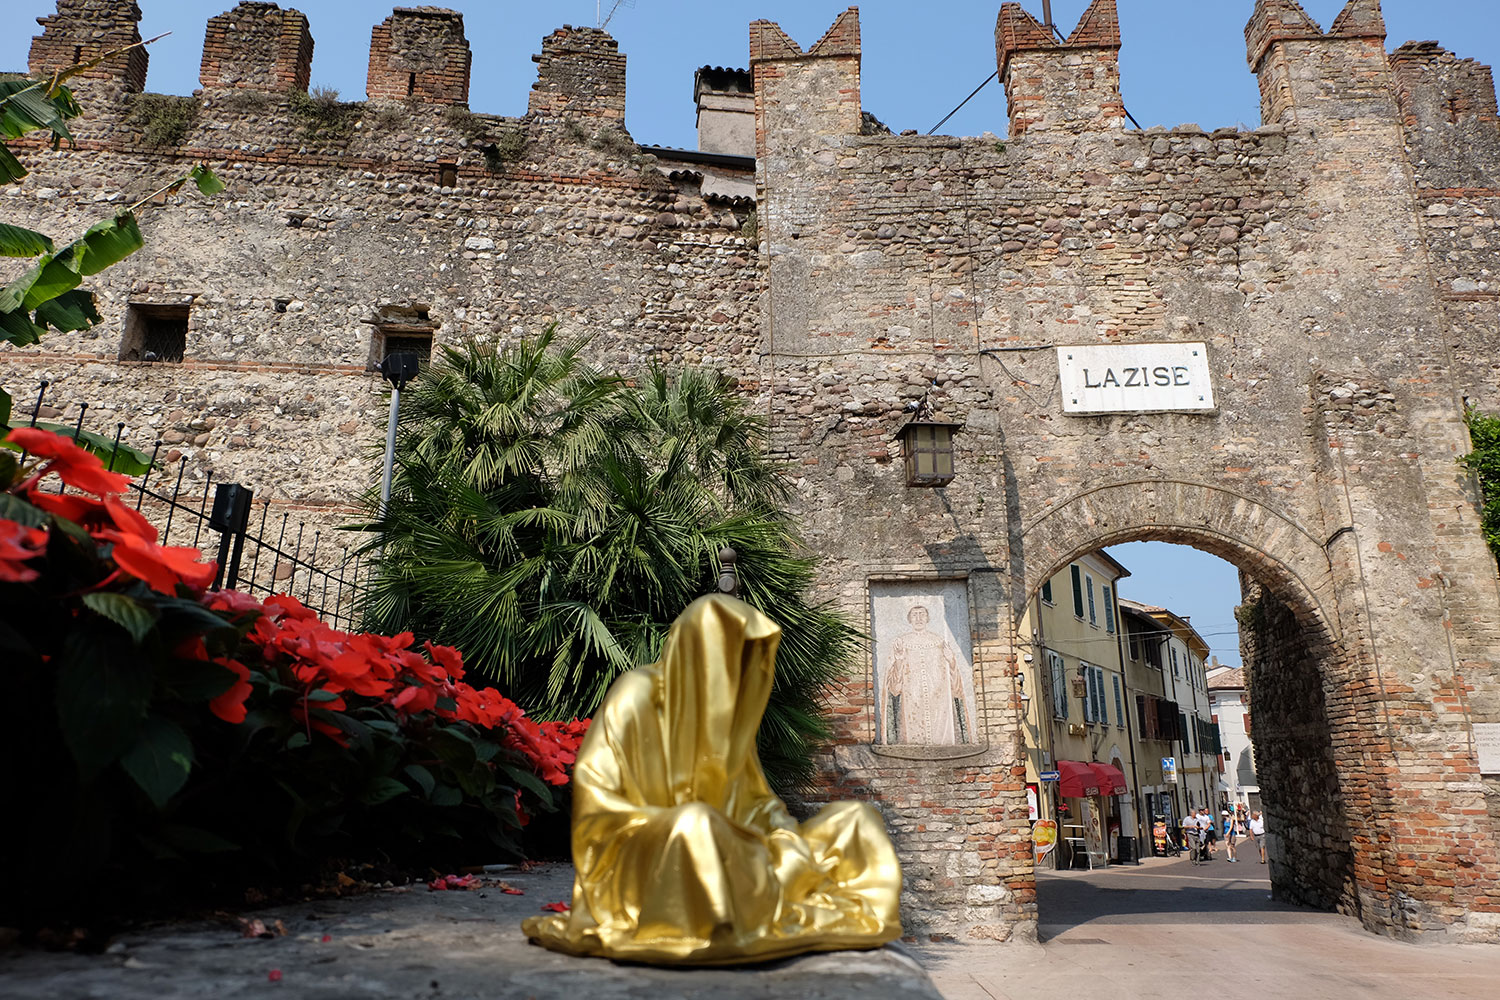 lazise-largo-de-guarda-guardians-of-time-manfred-kili-kielnhofer-contemporary-art-design-ats-arte-sculpture-chirge-religion-3556 - Kopie